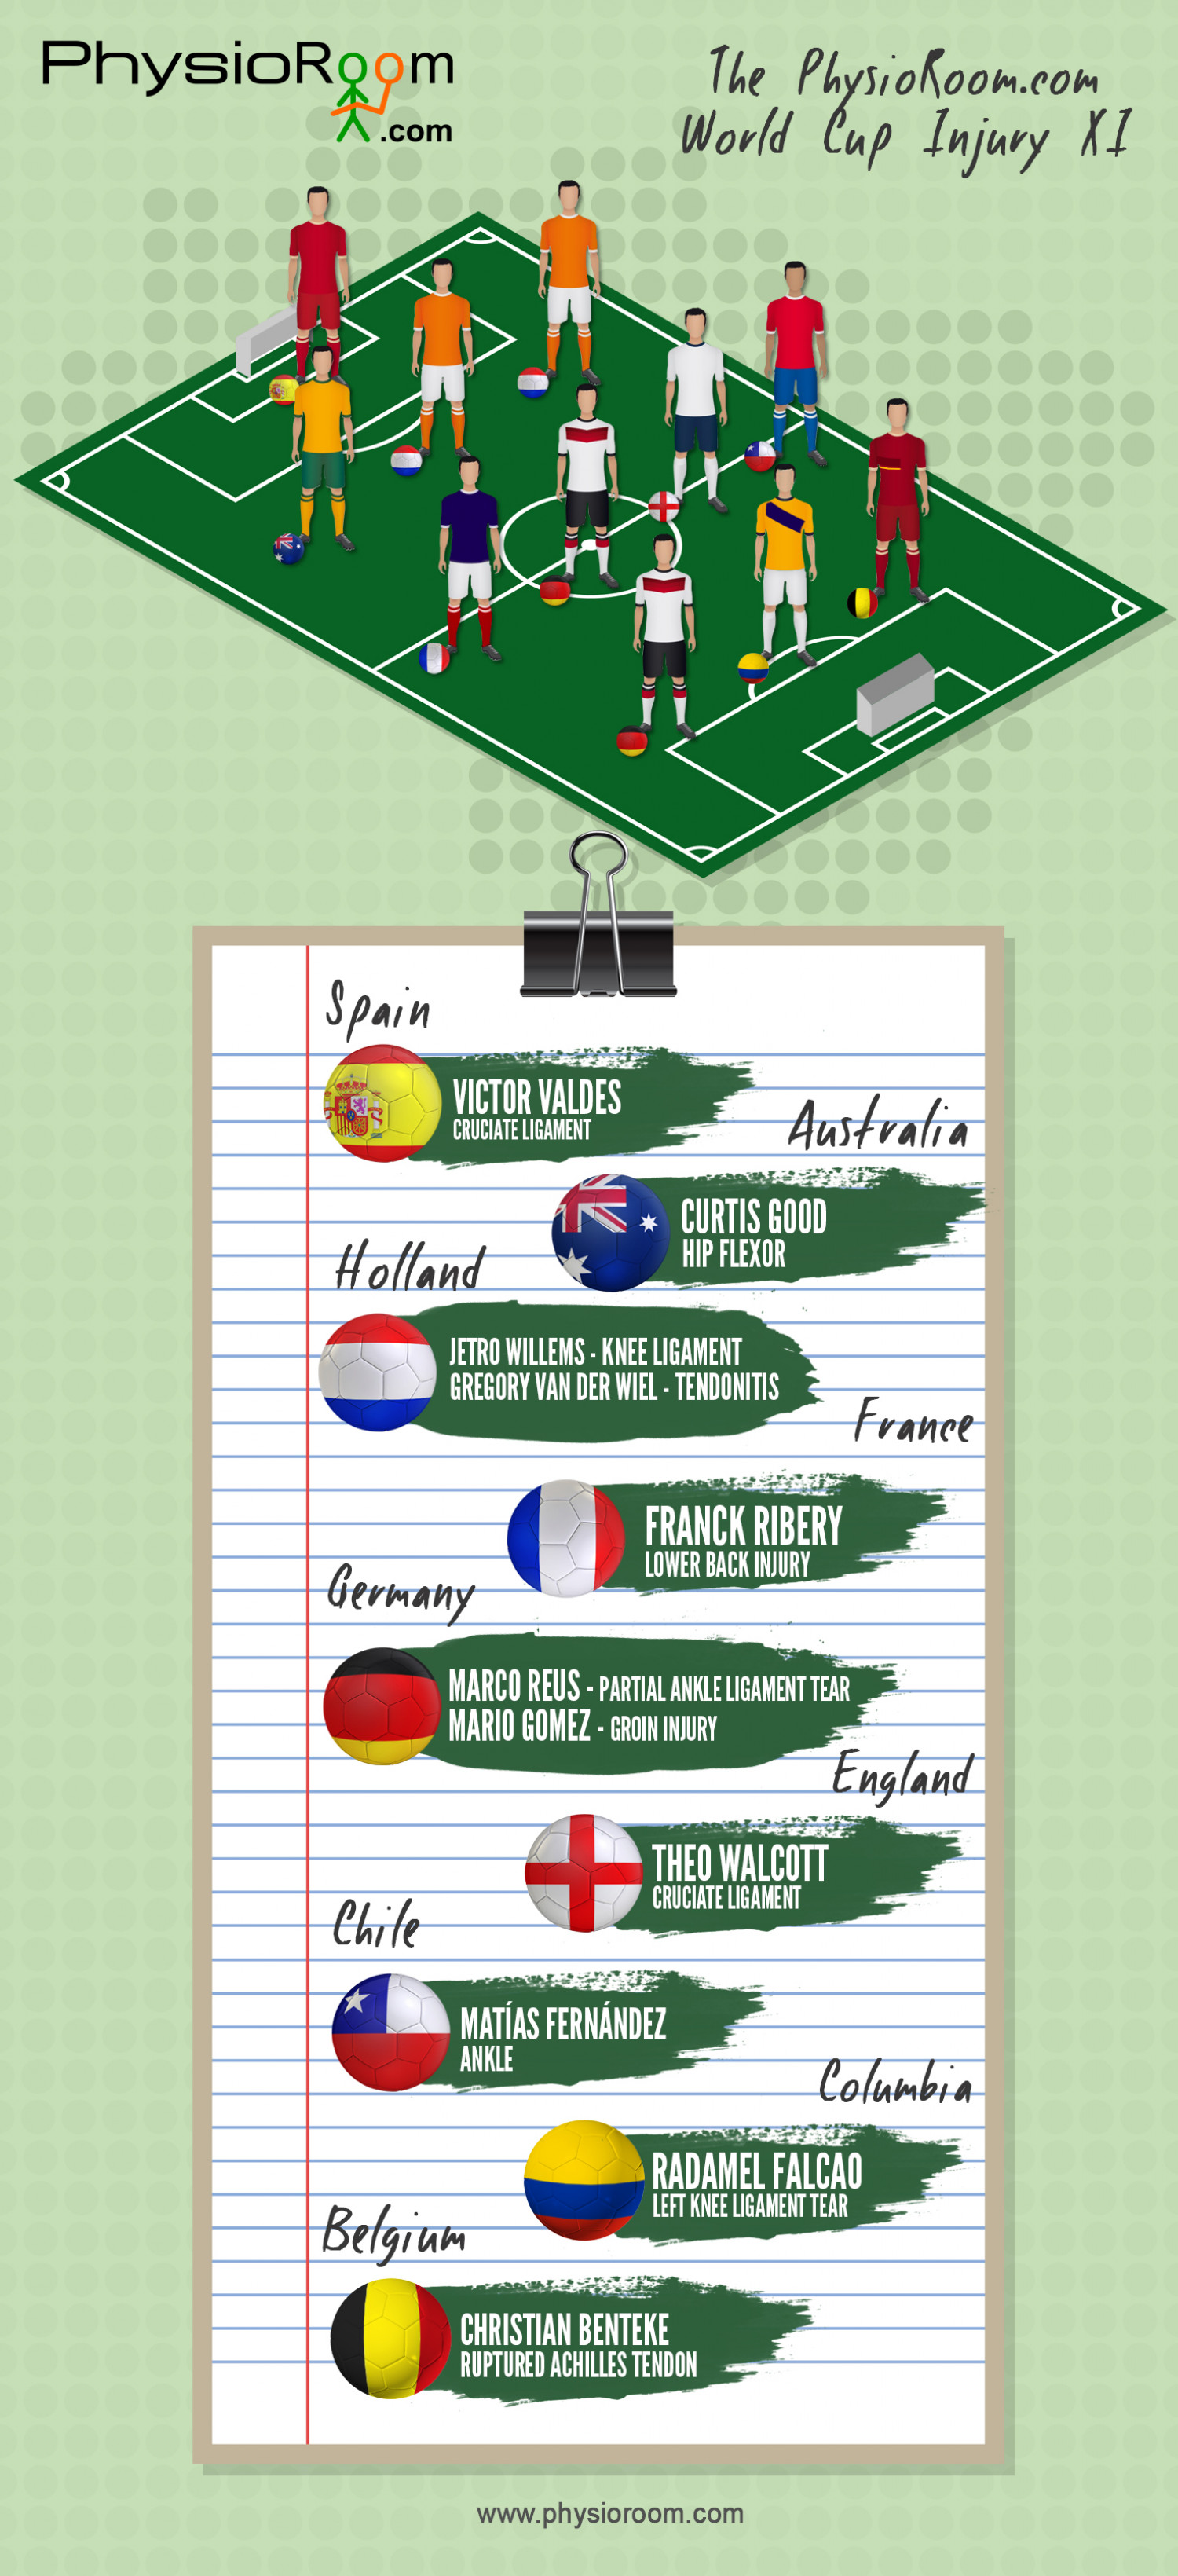 World Cup Injury XI Infographic